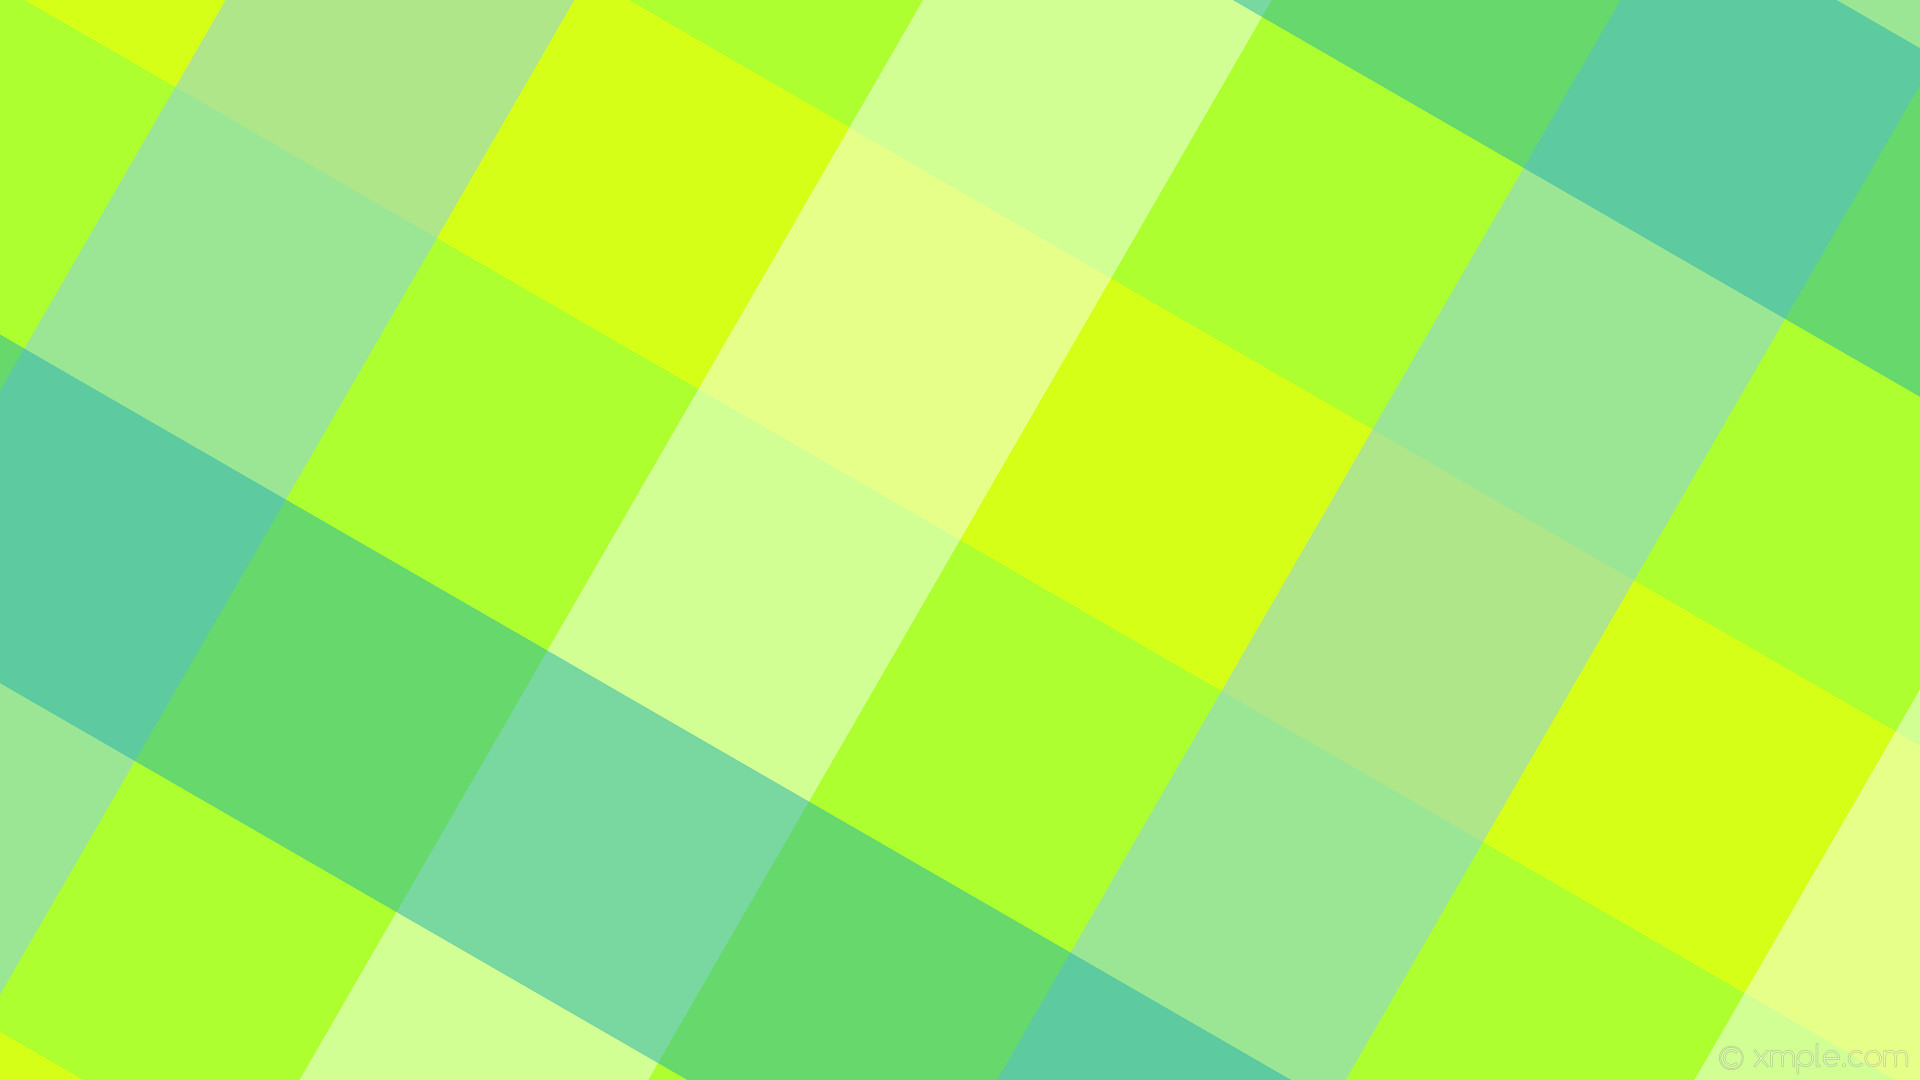 1920x1080 wallpaper yellow penta white blue green striped gingham green yellow mint  cream light sky blue light